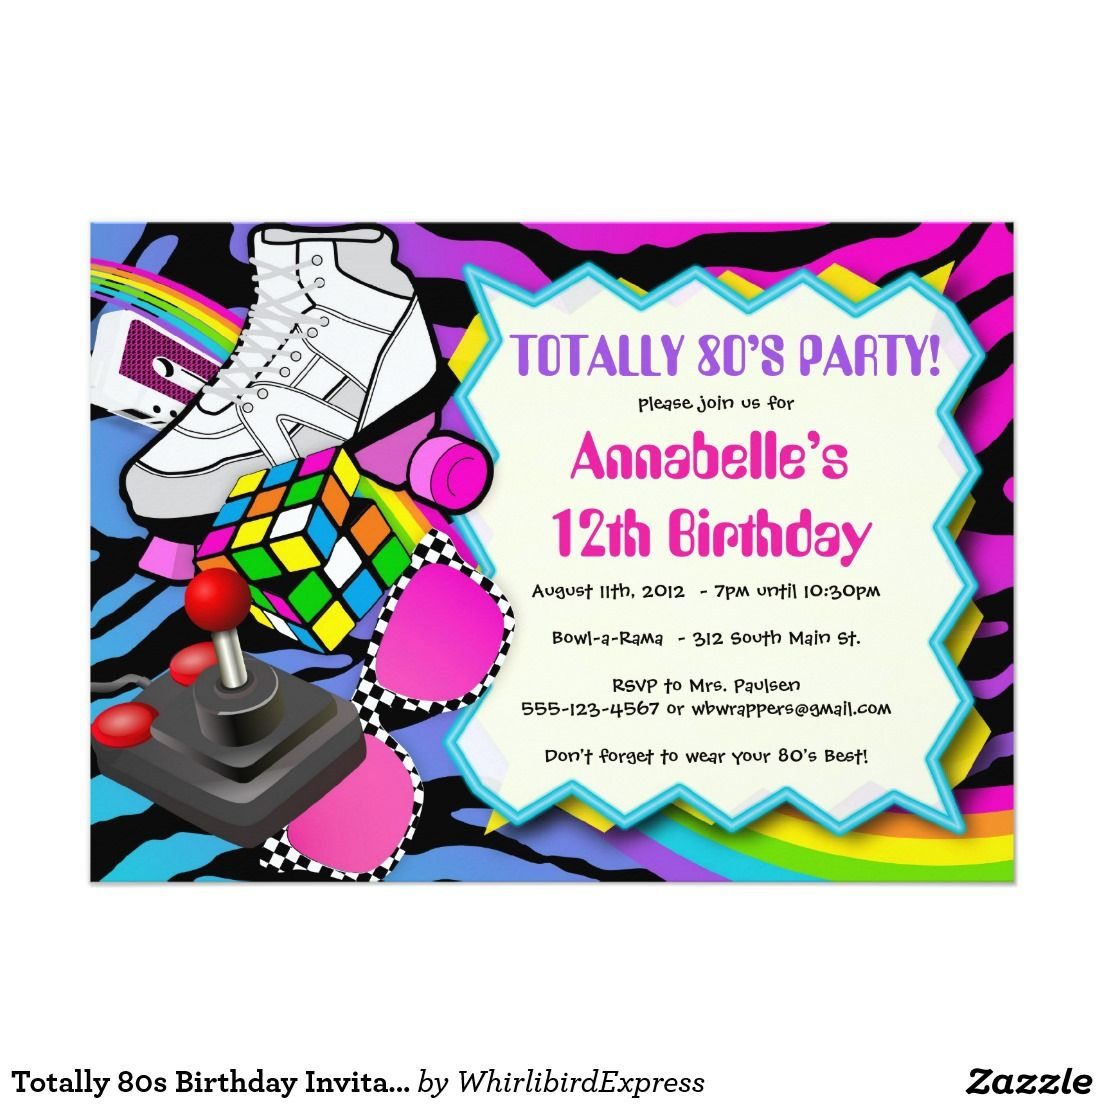 Totally 80s Birthday Invitation - 1980s theme | 1980s party ideas ...